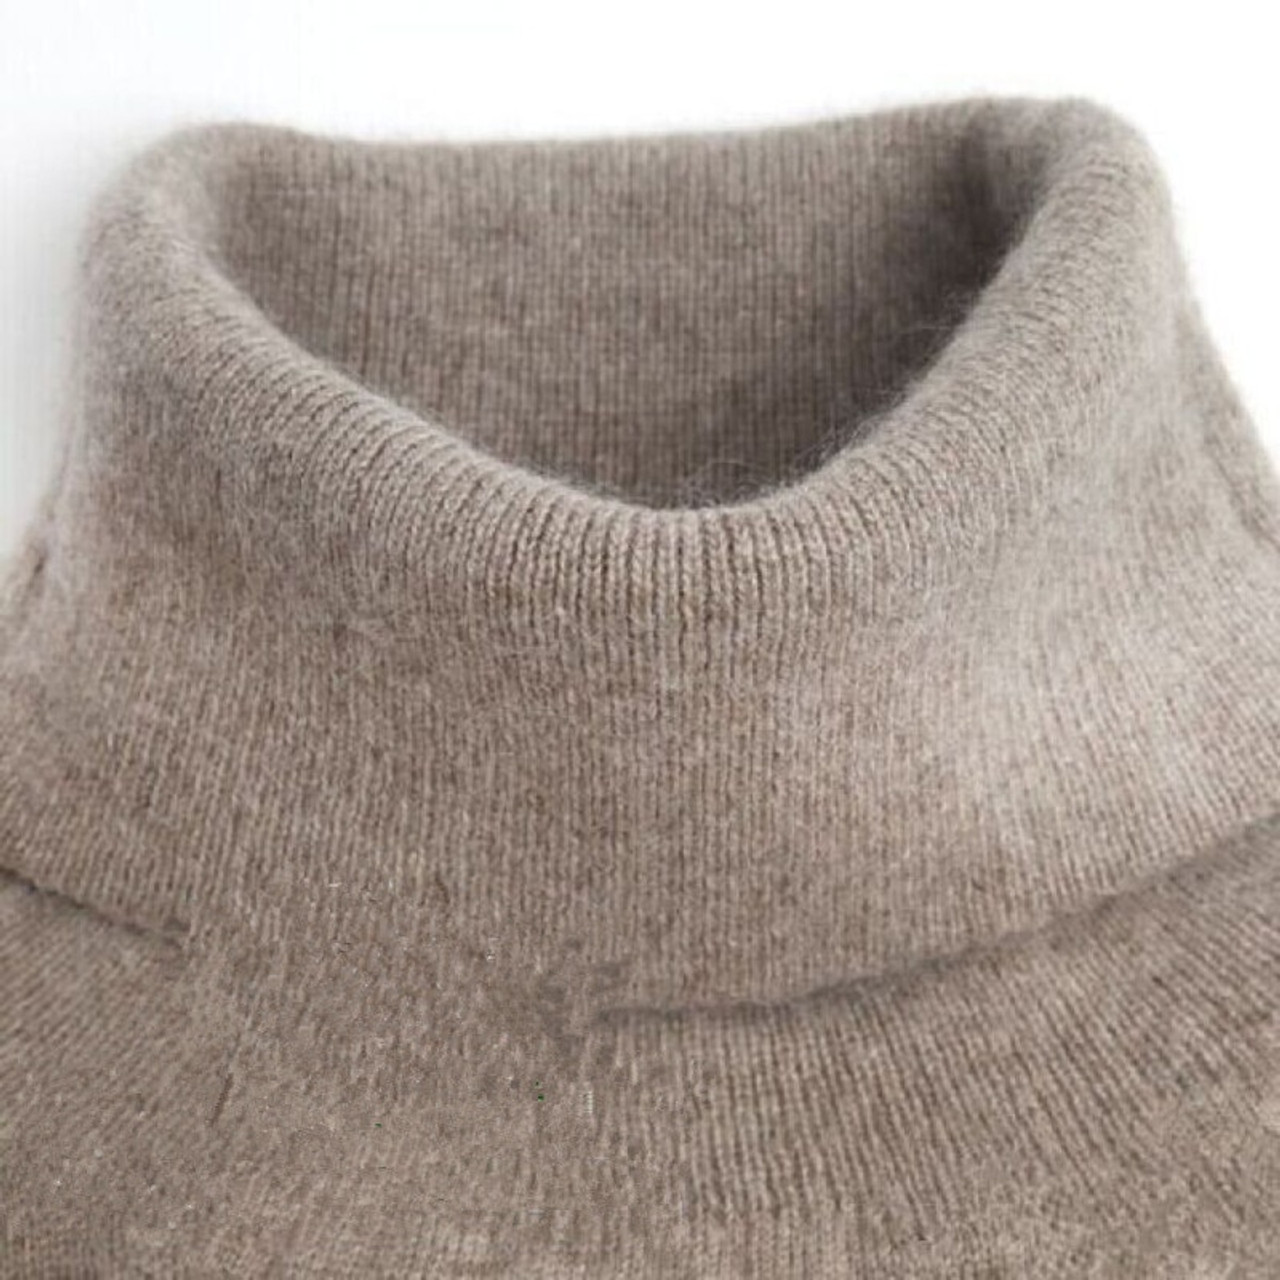 a0598aea018 Autumn winter cashmere Knitted sweater female pullover Plus size turtleneck  sweater women basic Bottoming sweater warm tops H533 - OnshopDeals.Com